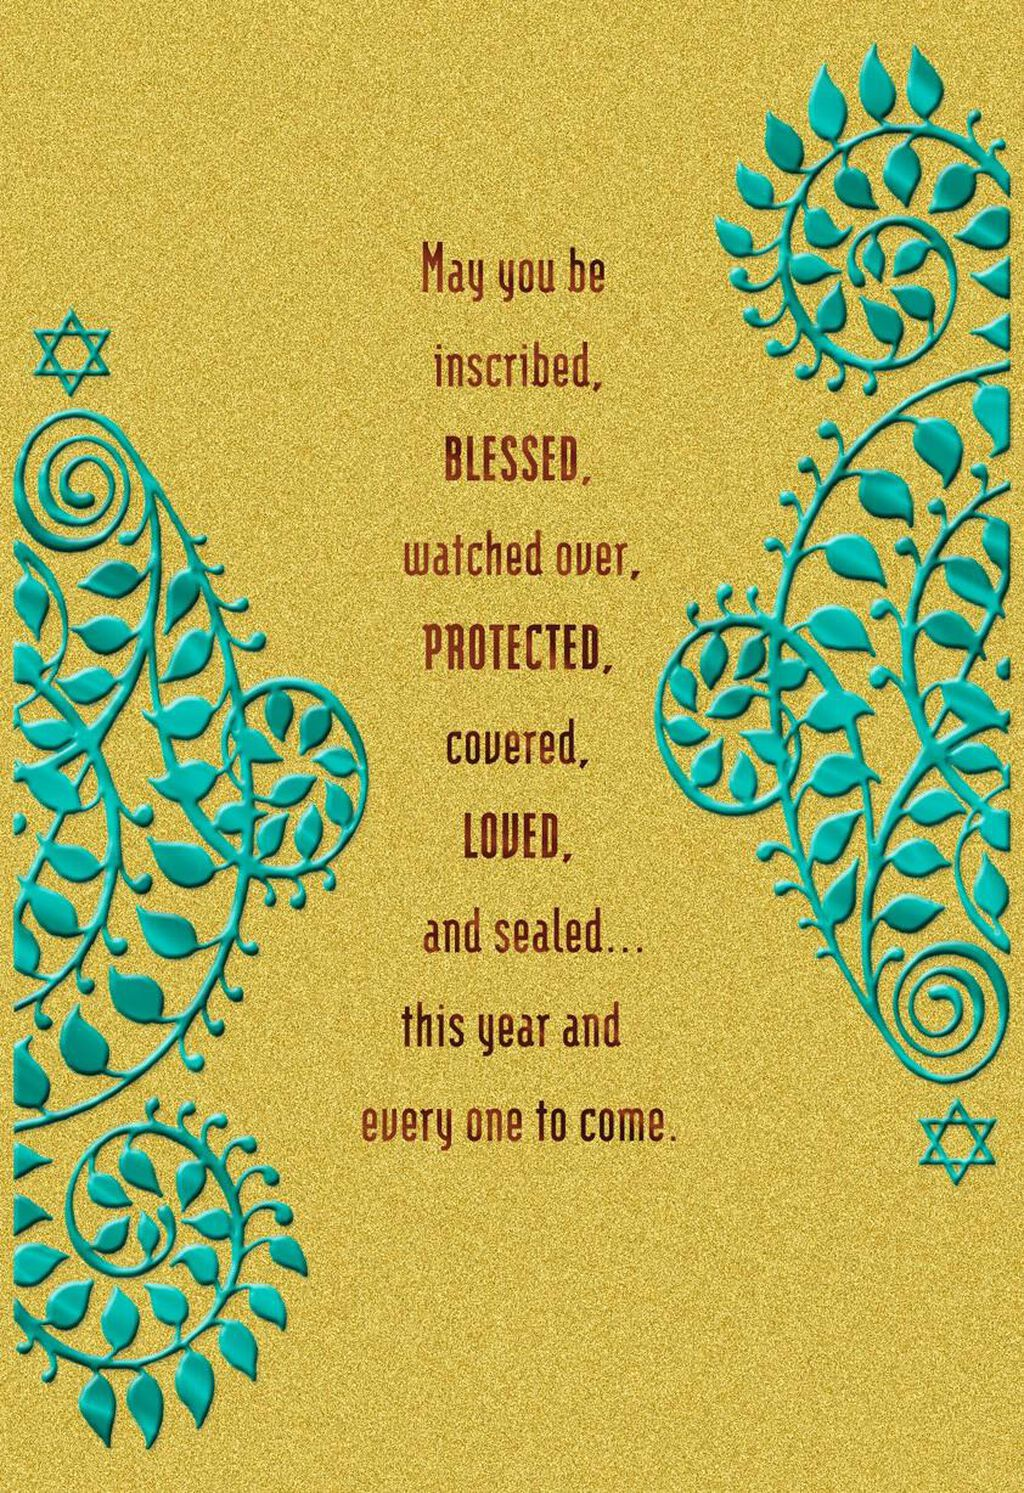 Rosh Hashanah Blessings Card Greeting Cards Hallmark